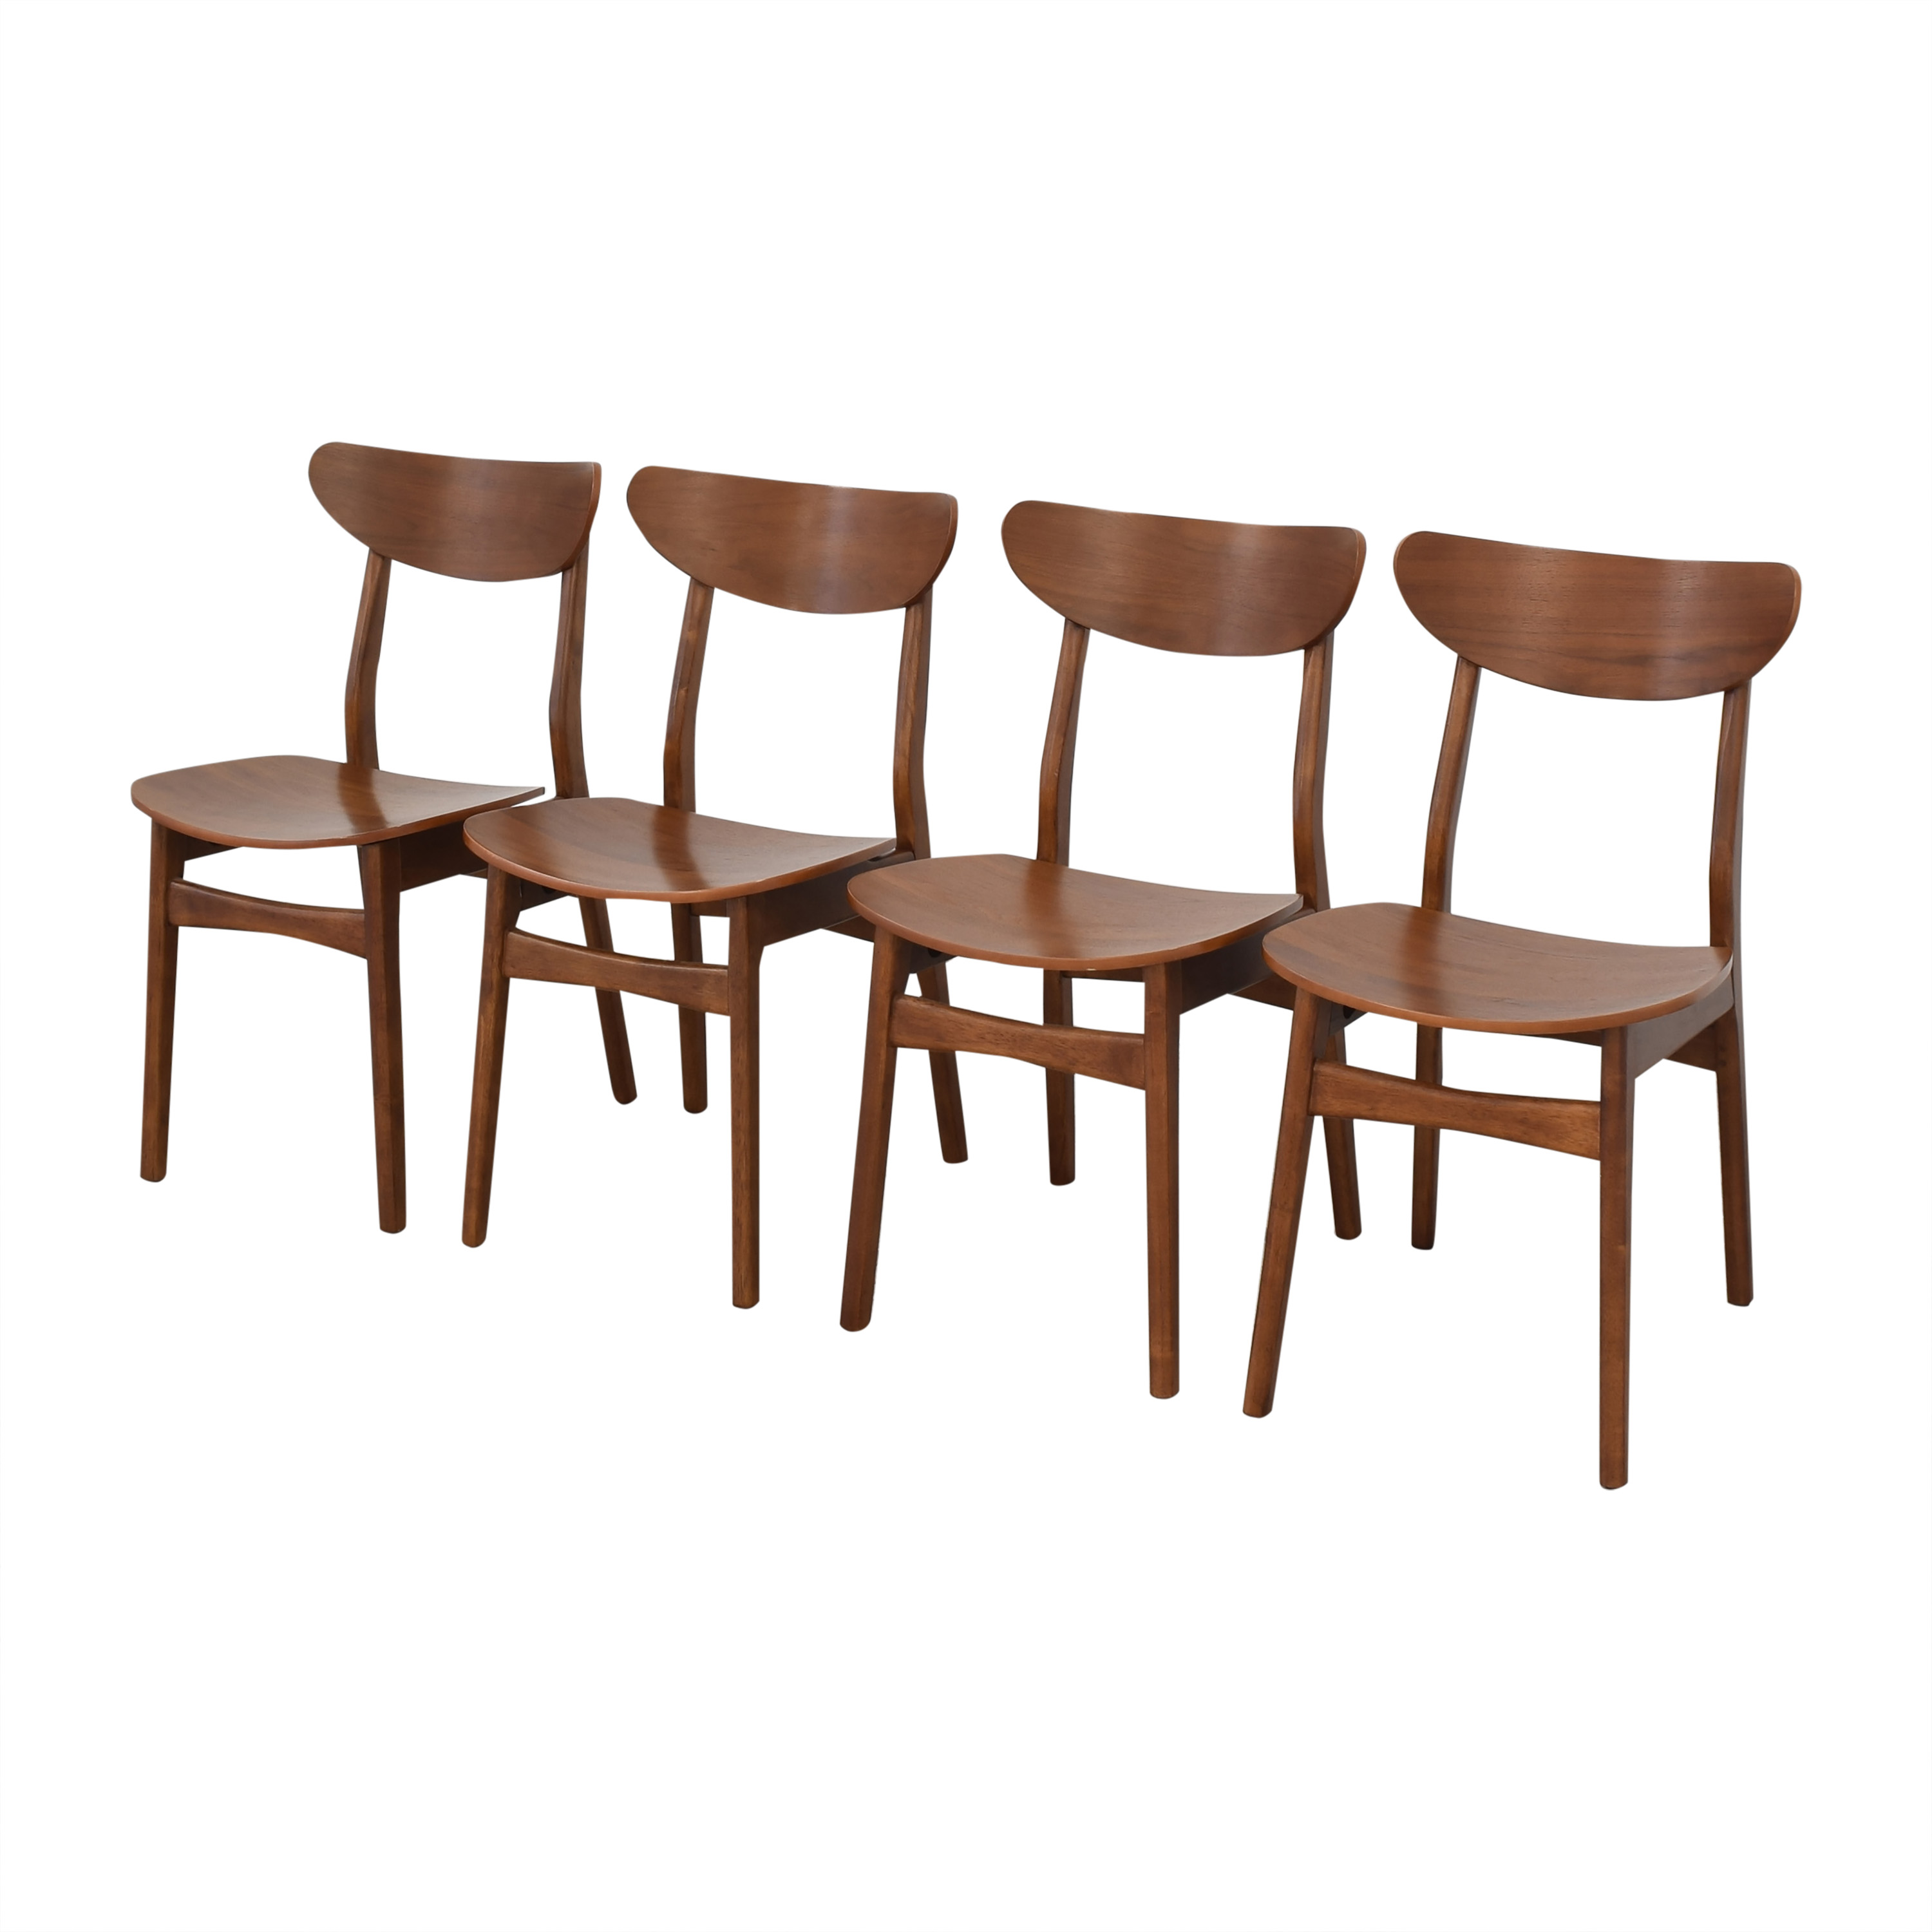 West Elm West Elm Classic Cafe Dining Chairs pa